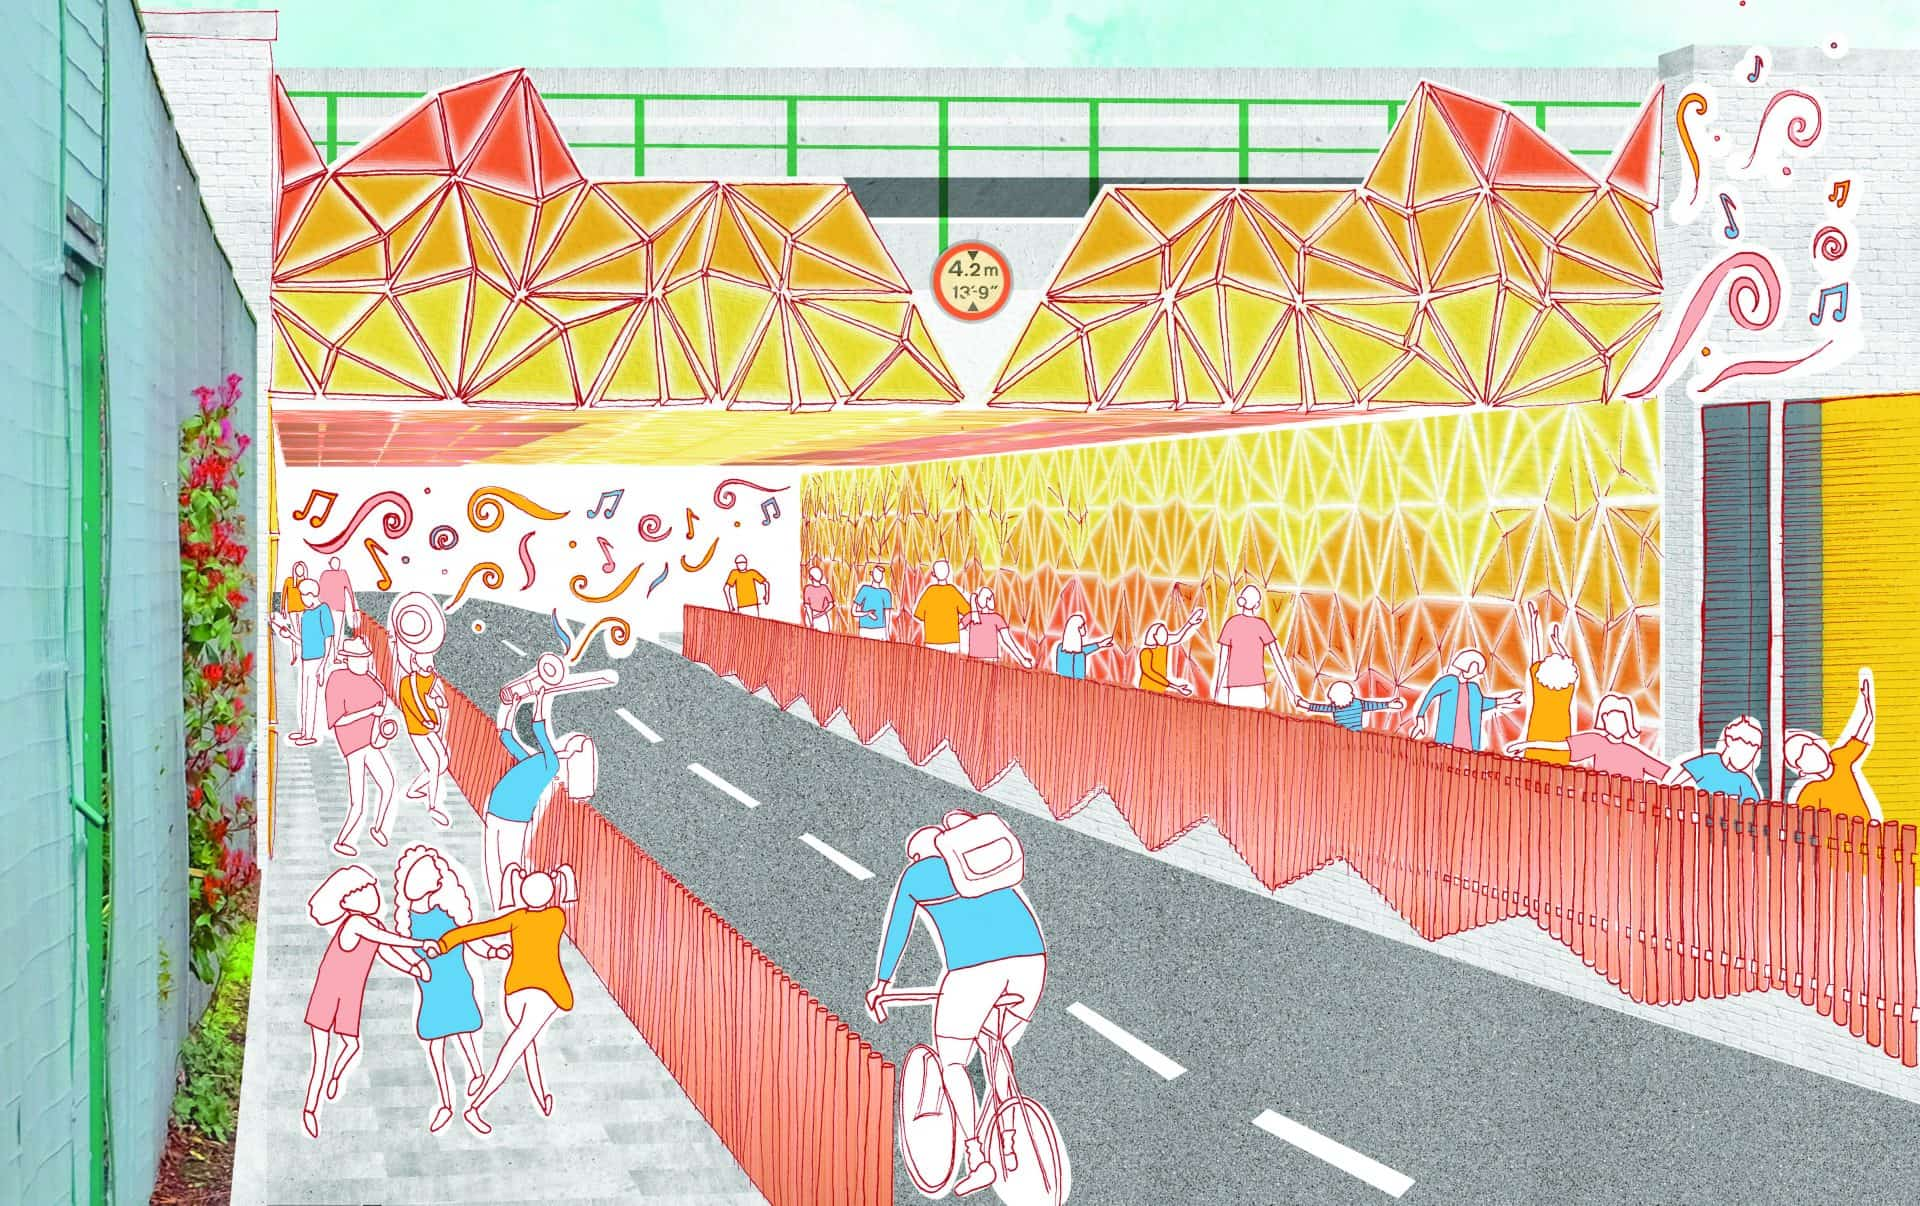 Shortlisted designs revealed for London Festival of Architecture and Wandsworth Council Thessaly Road competition